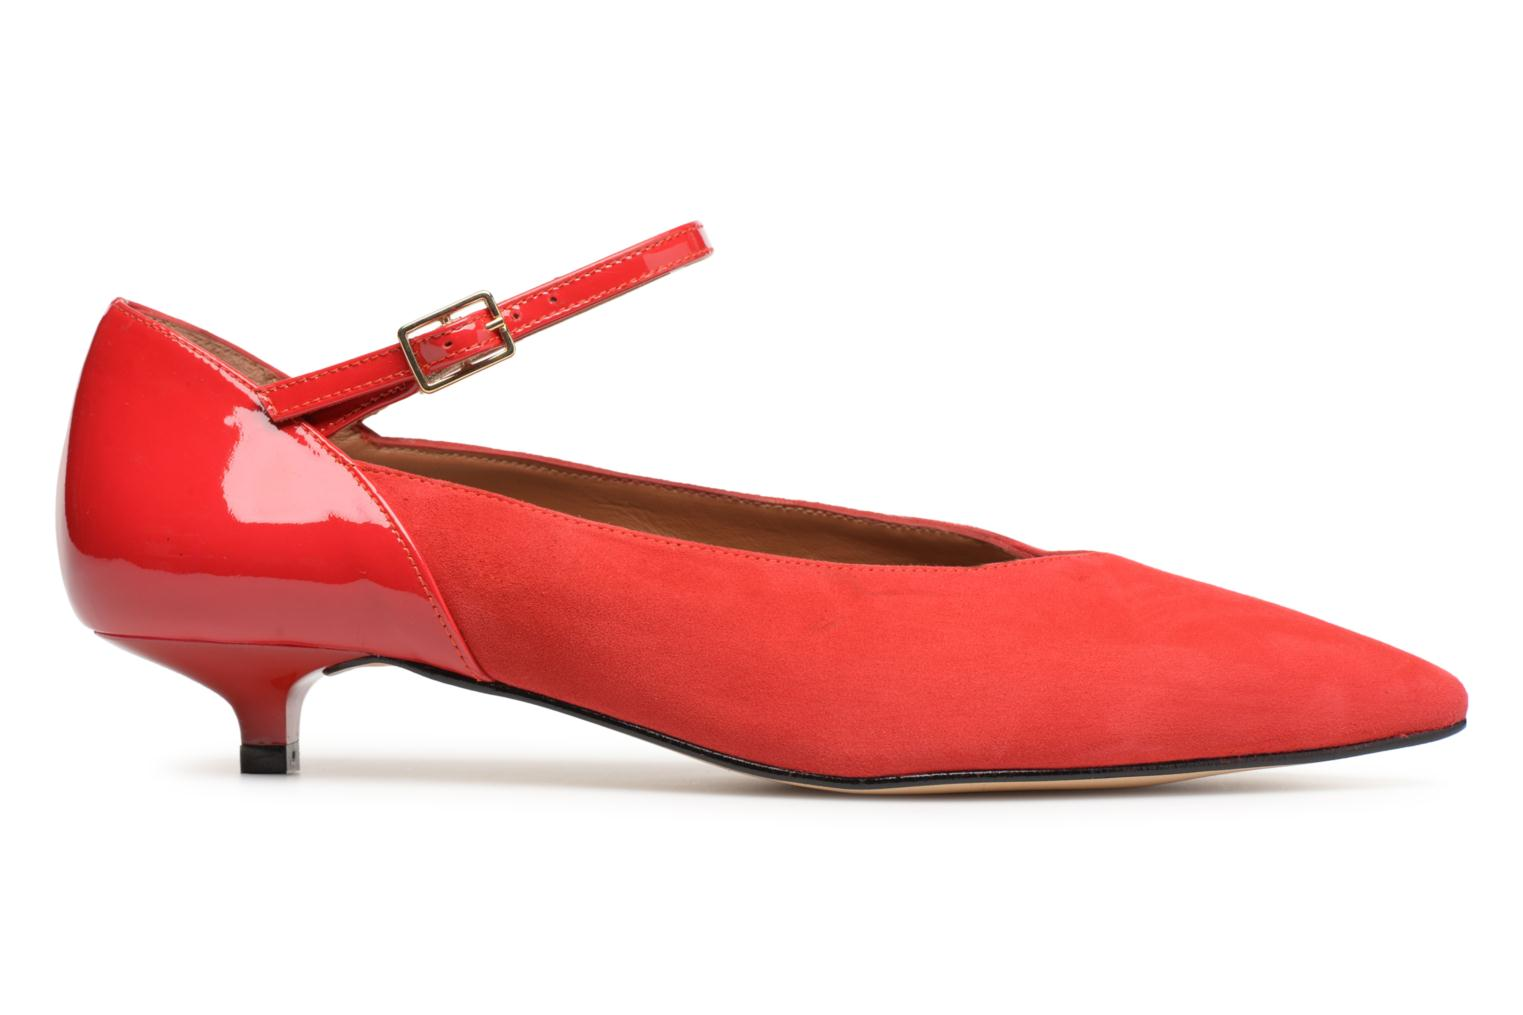 Marques Chaussure femme Made by SARENZA femme 80's Disco Girl Escarpins #1 Cuir Velours et Cuir Vernis Rouge